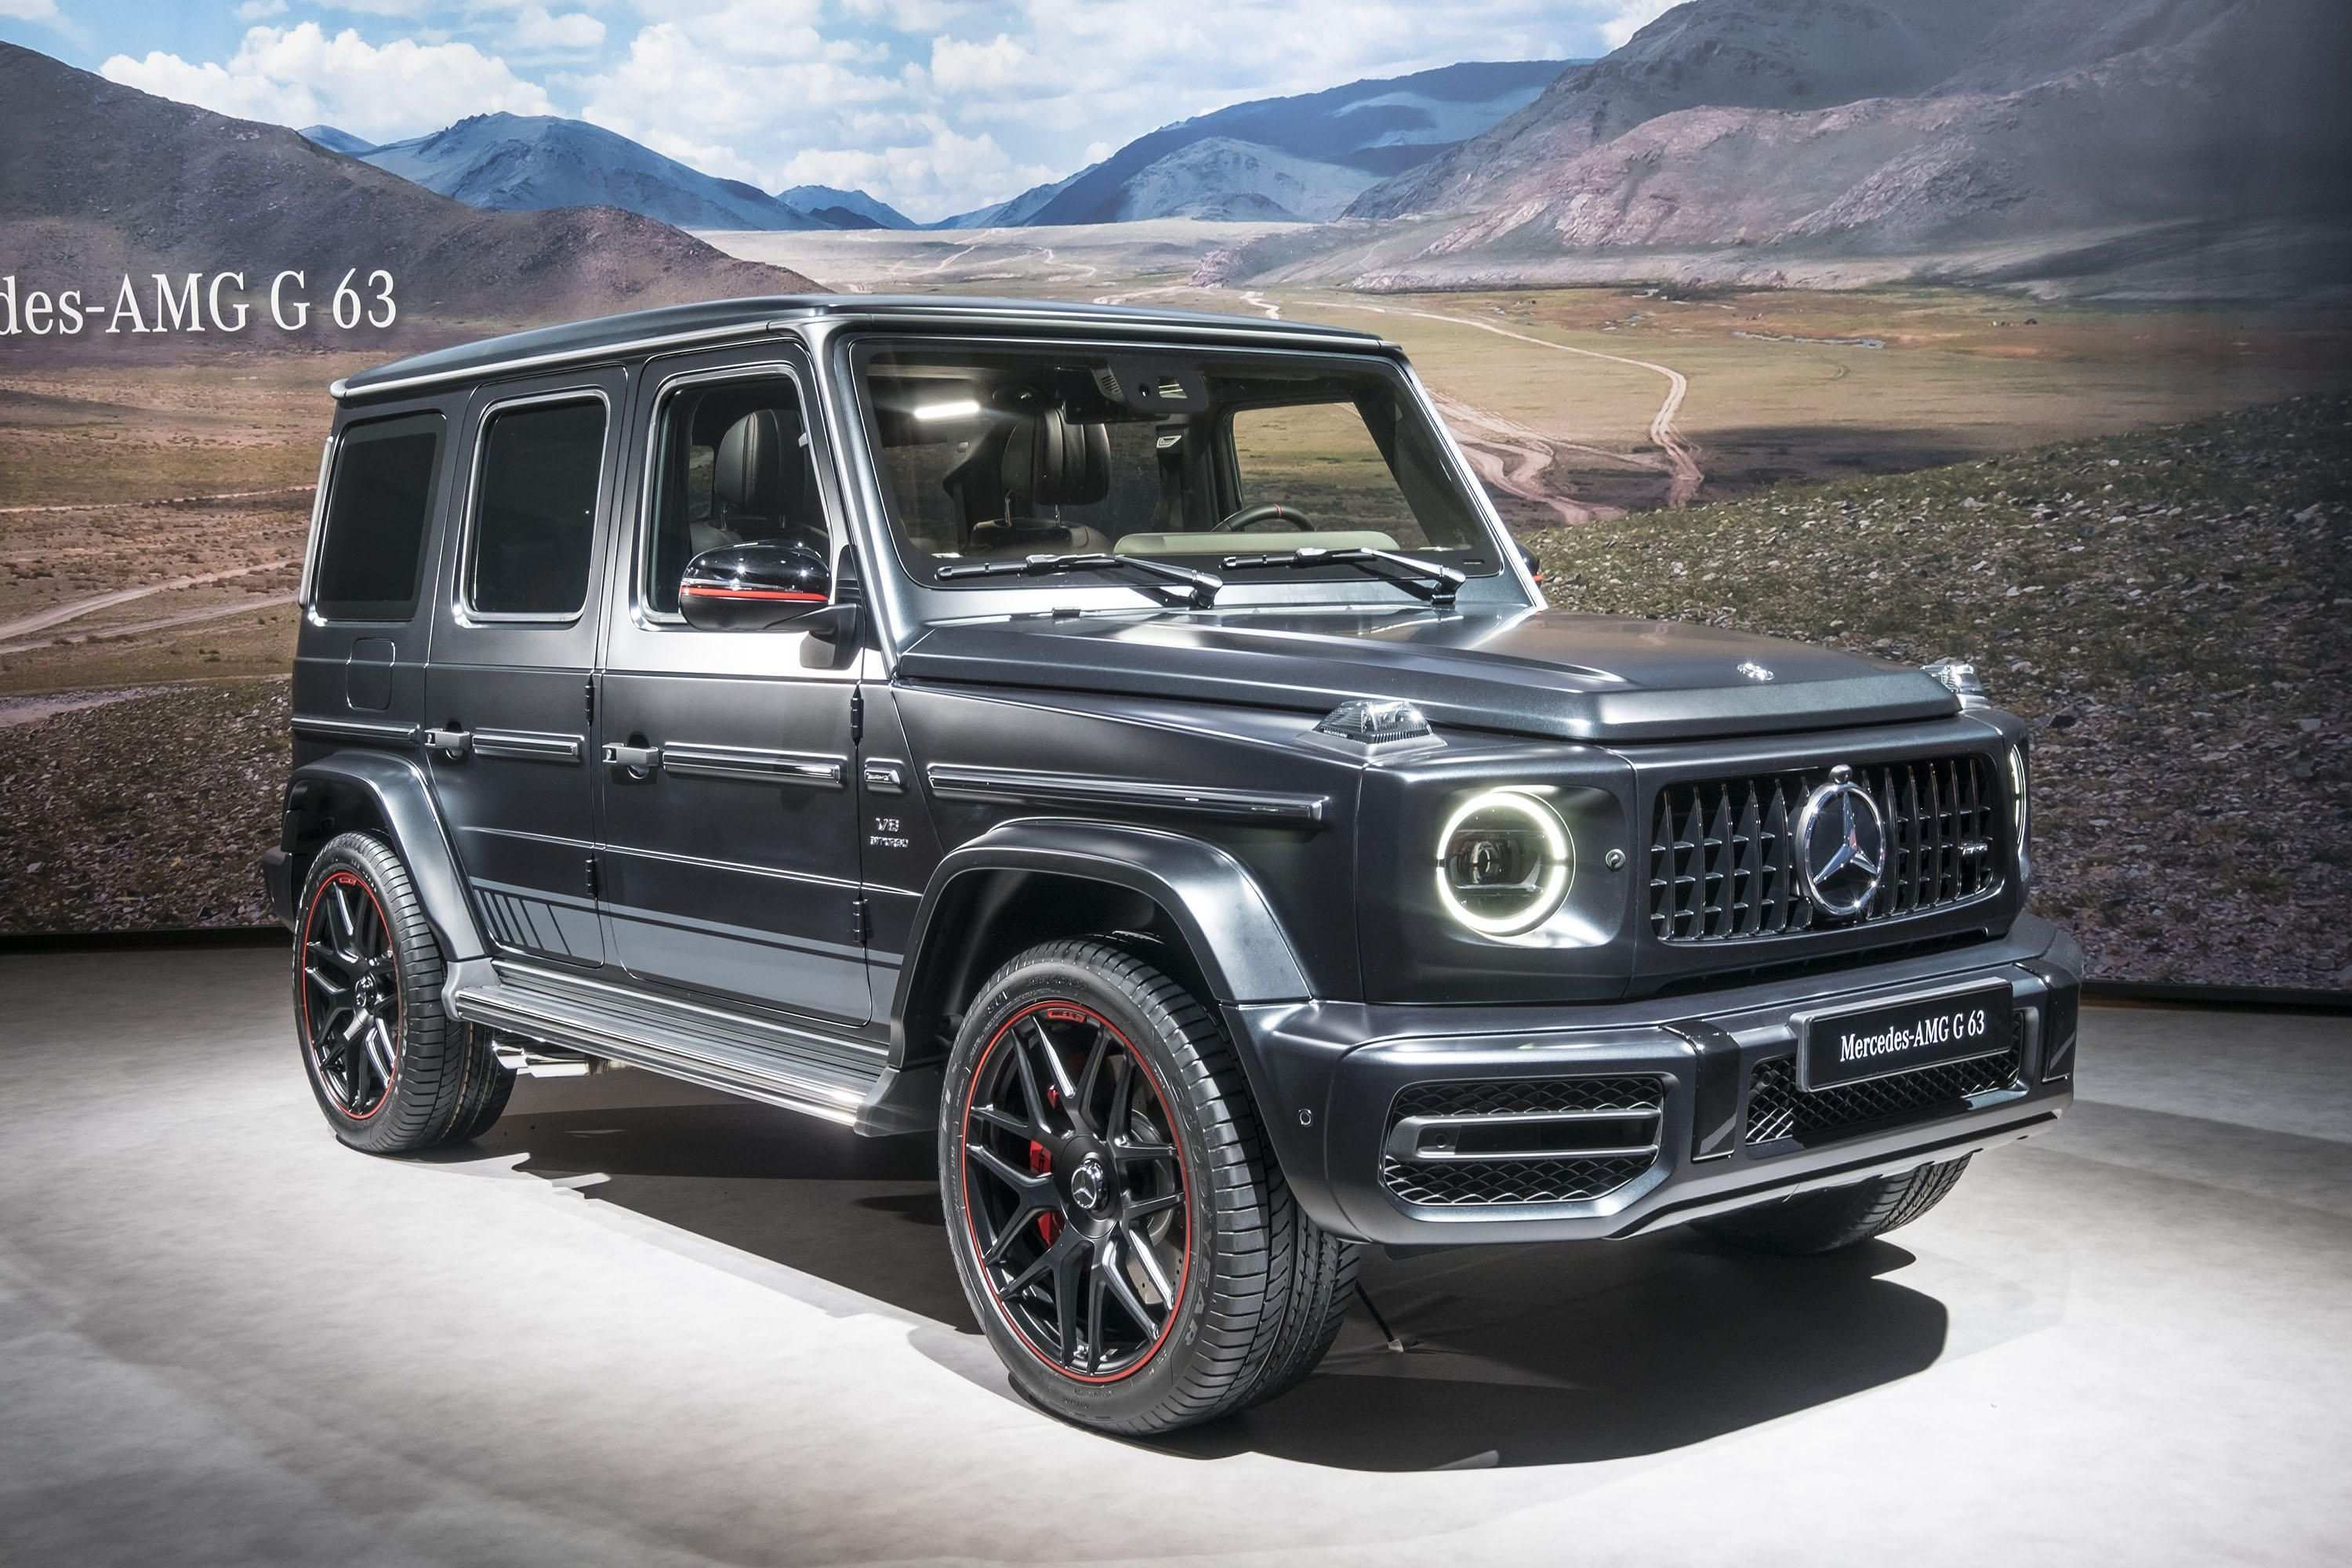 48 All New Jeep Mercedes Benz 2019 Redesign And Concept Redesign with Jeep Mercedes Benz 2019 Redesign And Concept